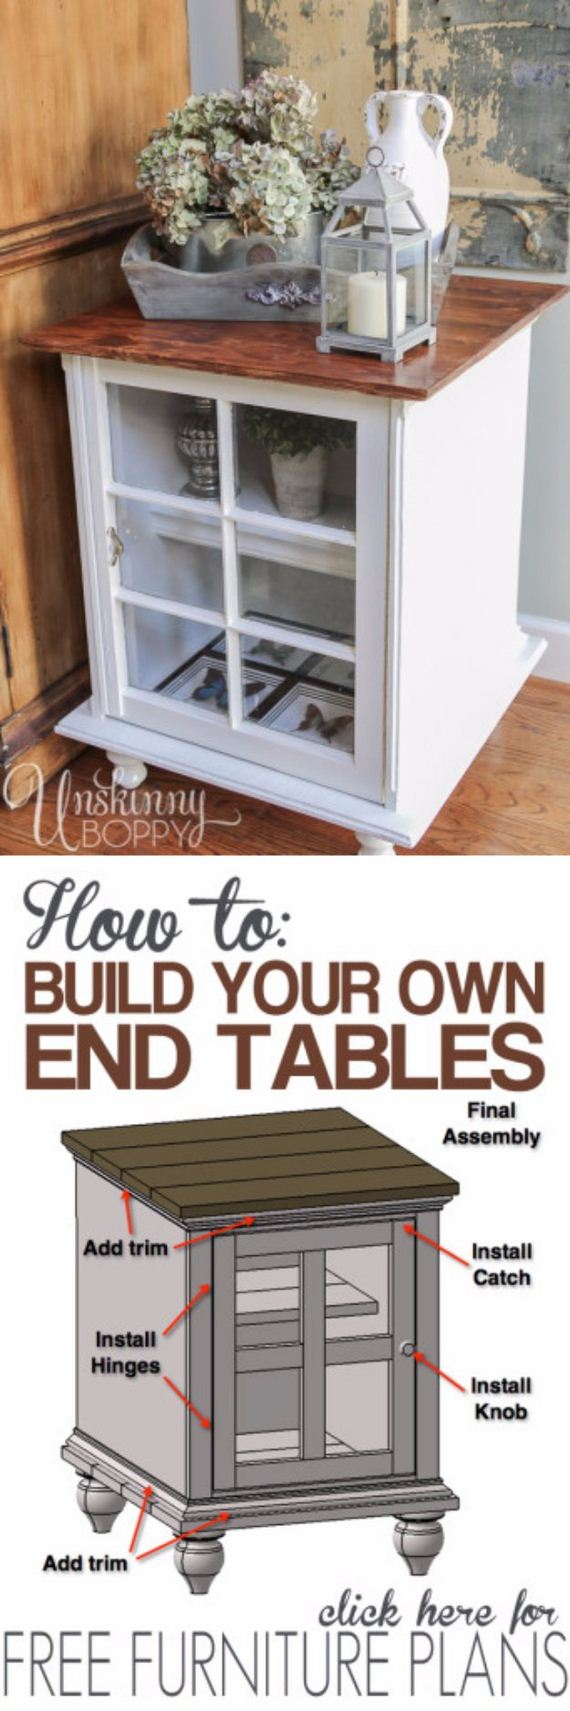 18-DIY-End-Tables